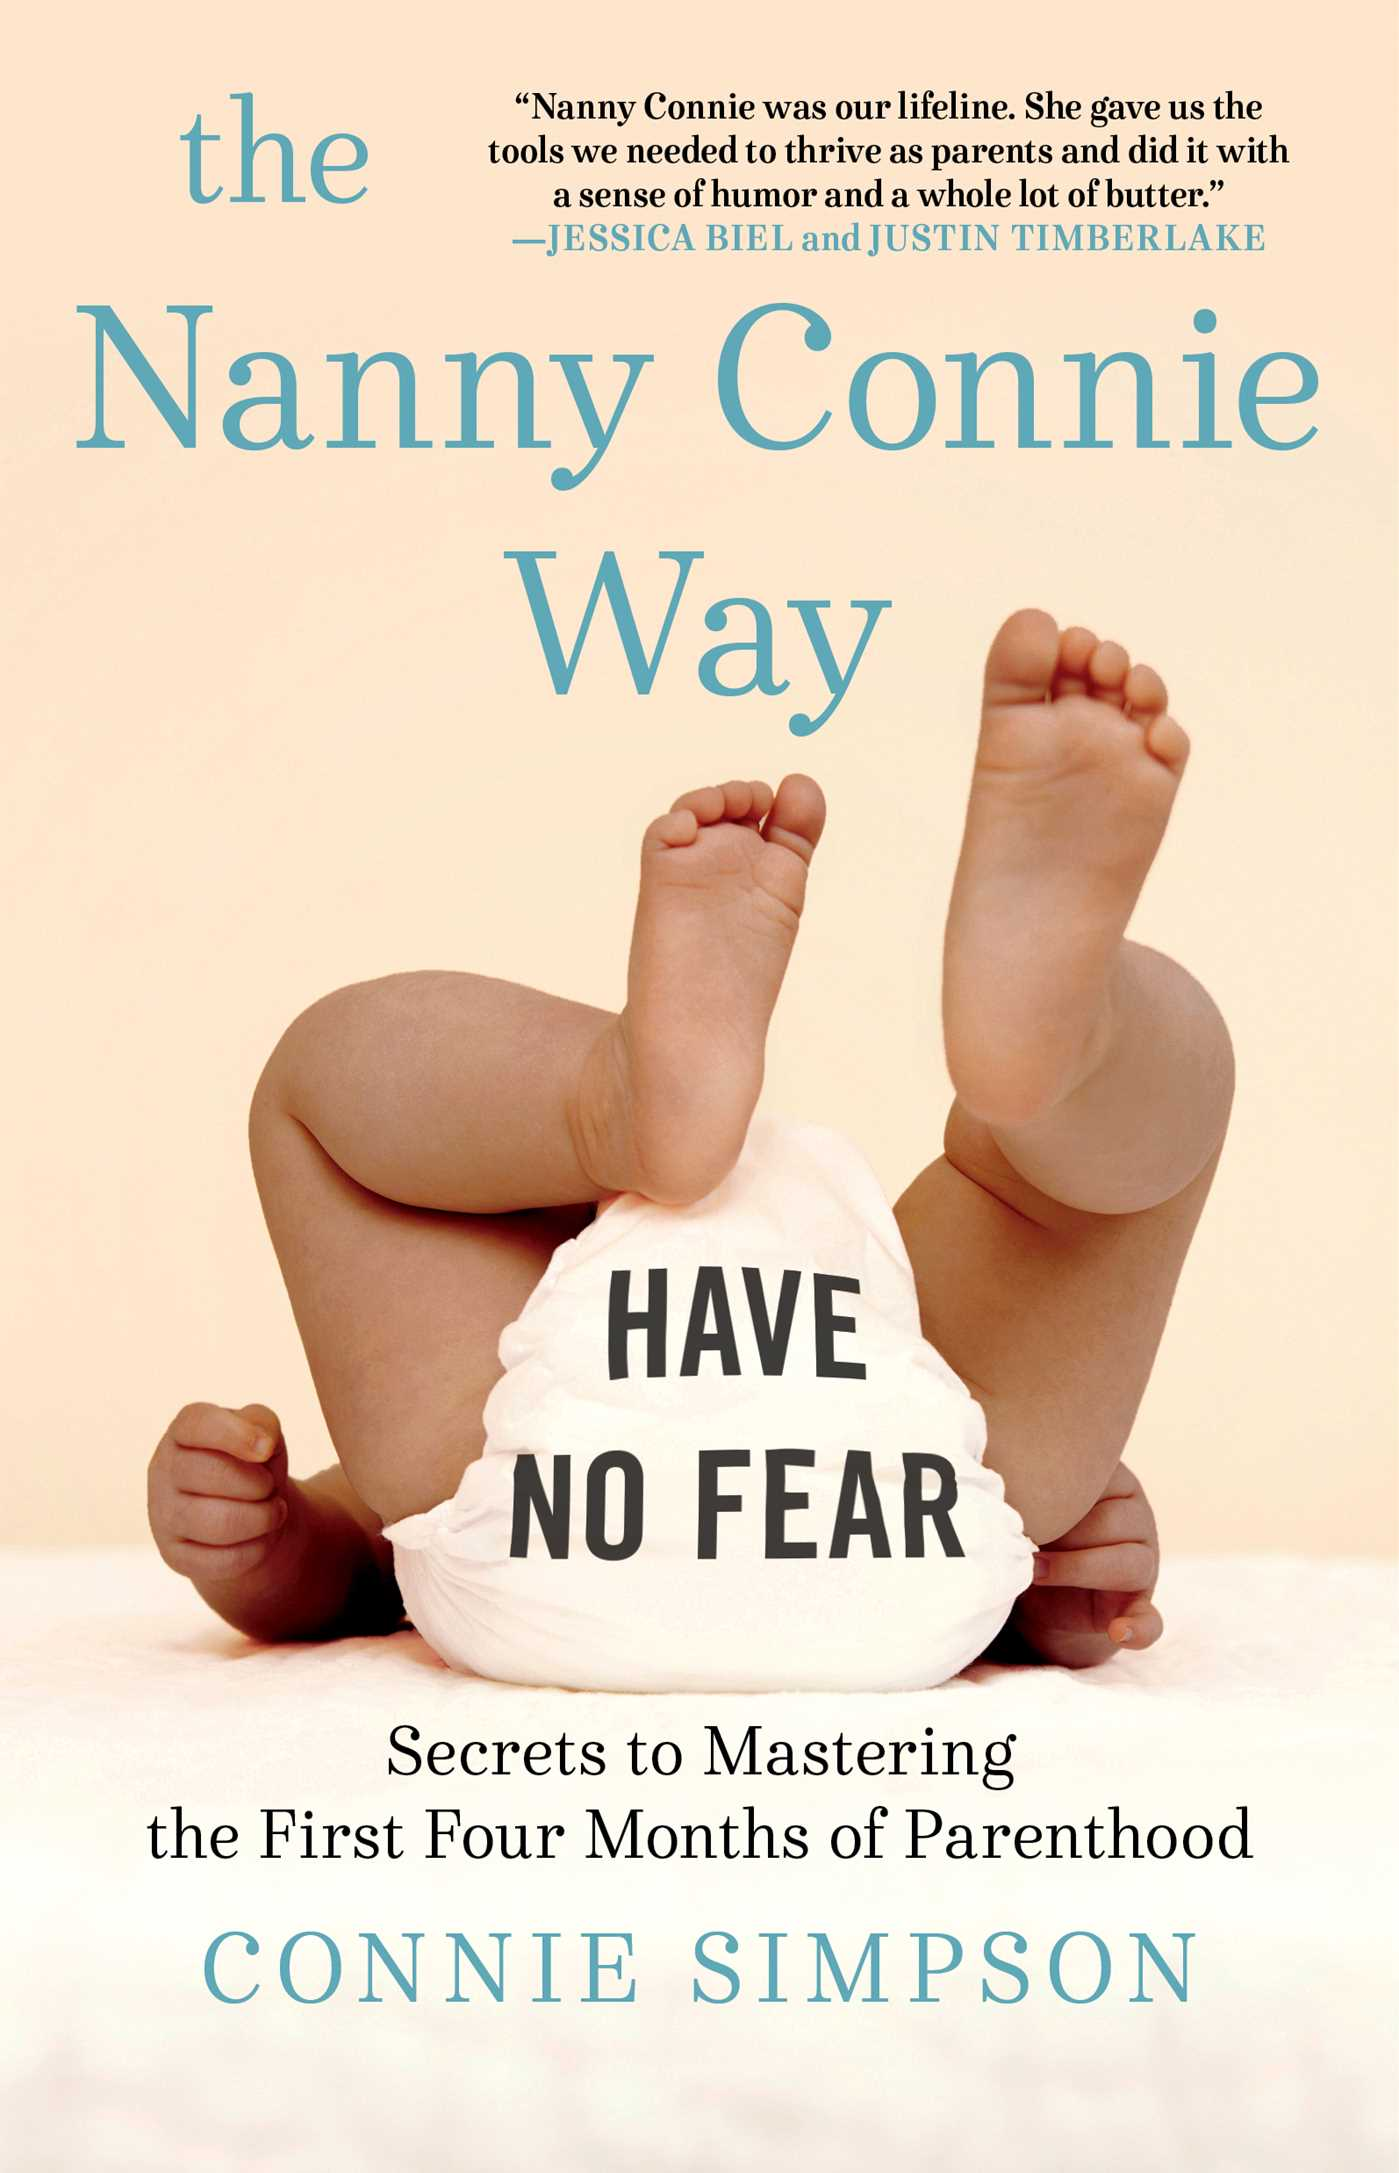 The nanny connie way 9781501184932 hr